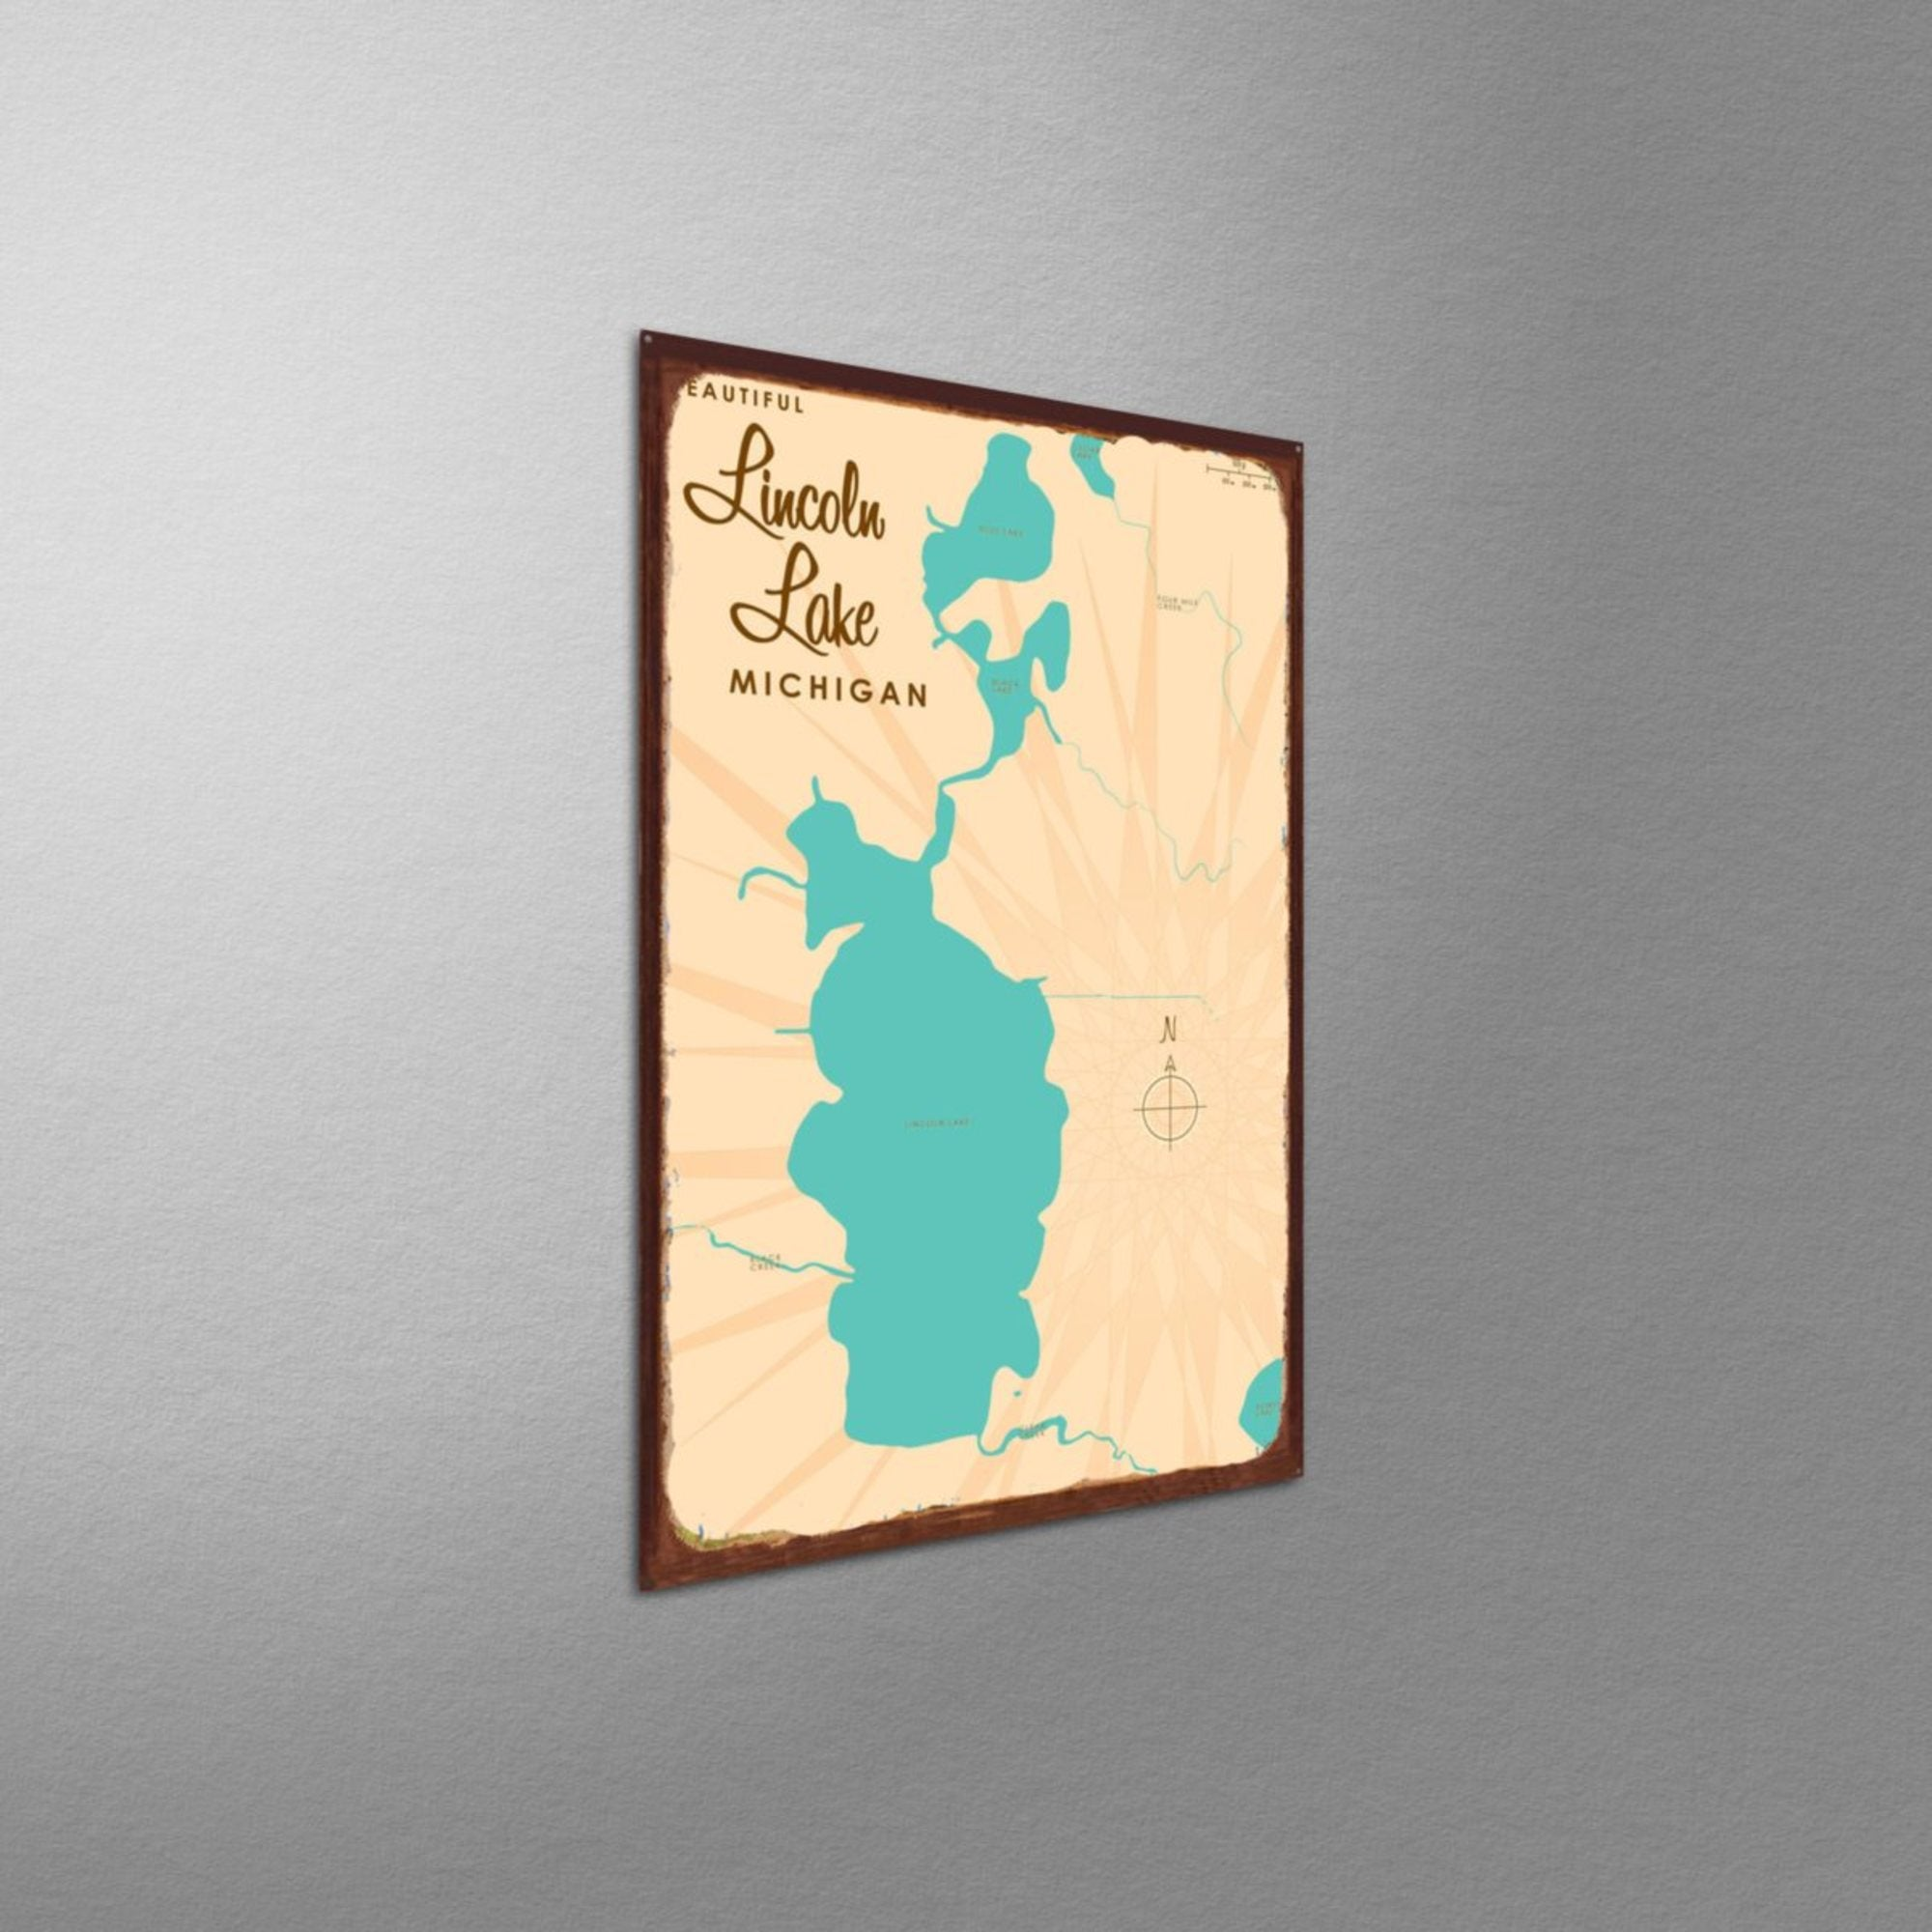 Lincoln Lake Michigan, Rustic Metal Sign Map Art